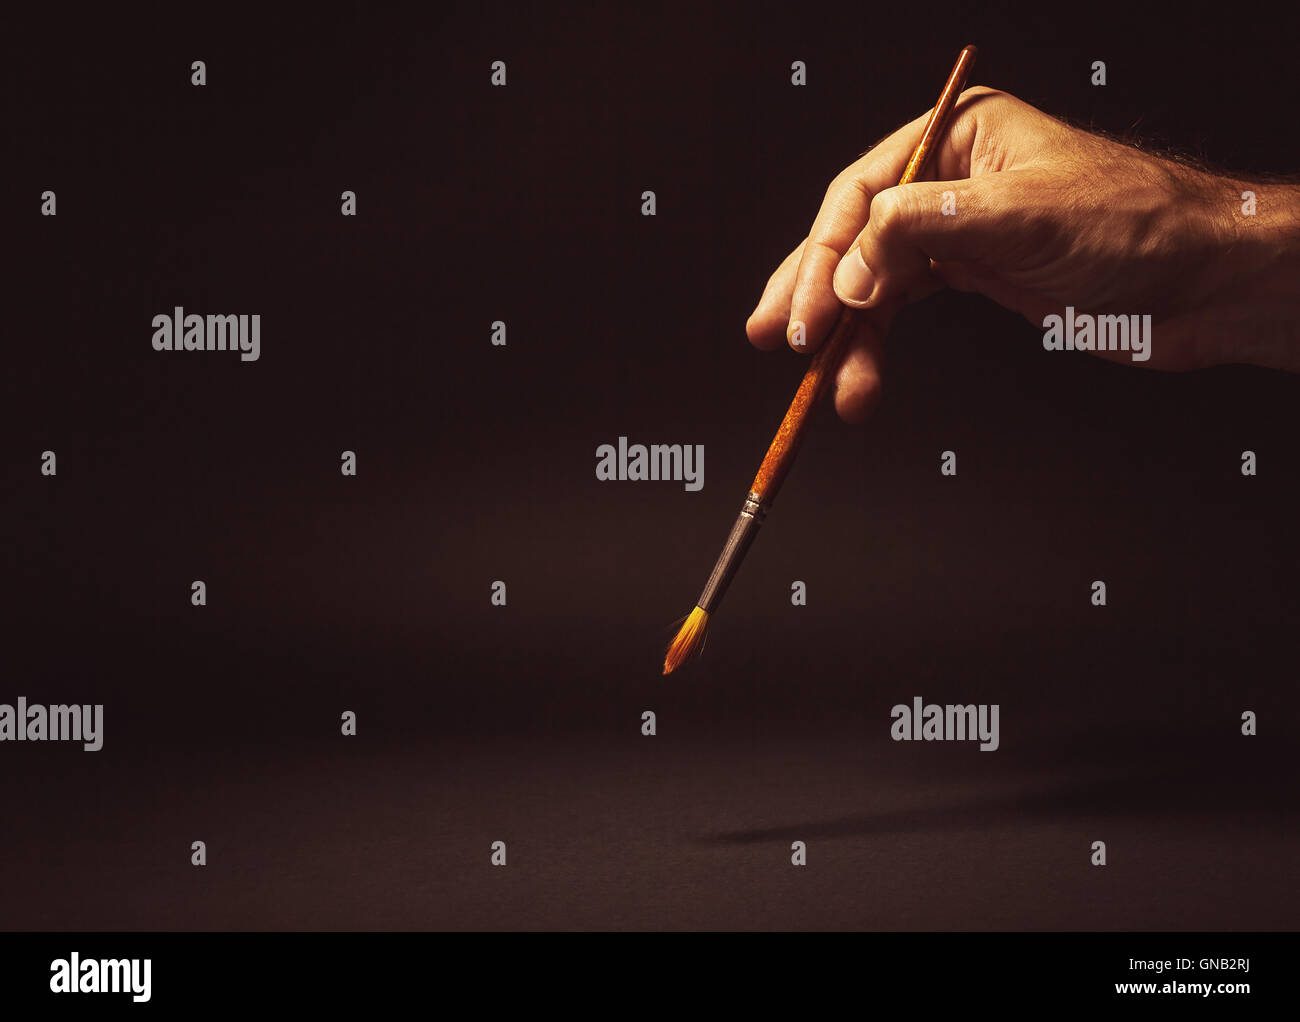 Conceptual composition, man's hand holding a brush on black background. - Stock Image